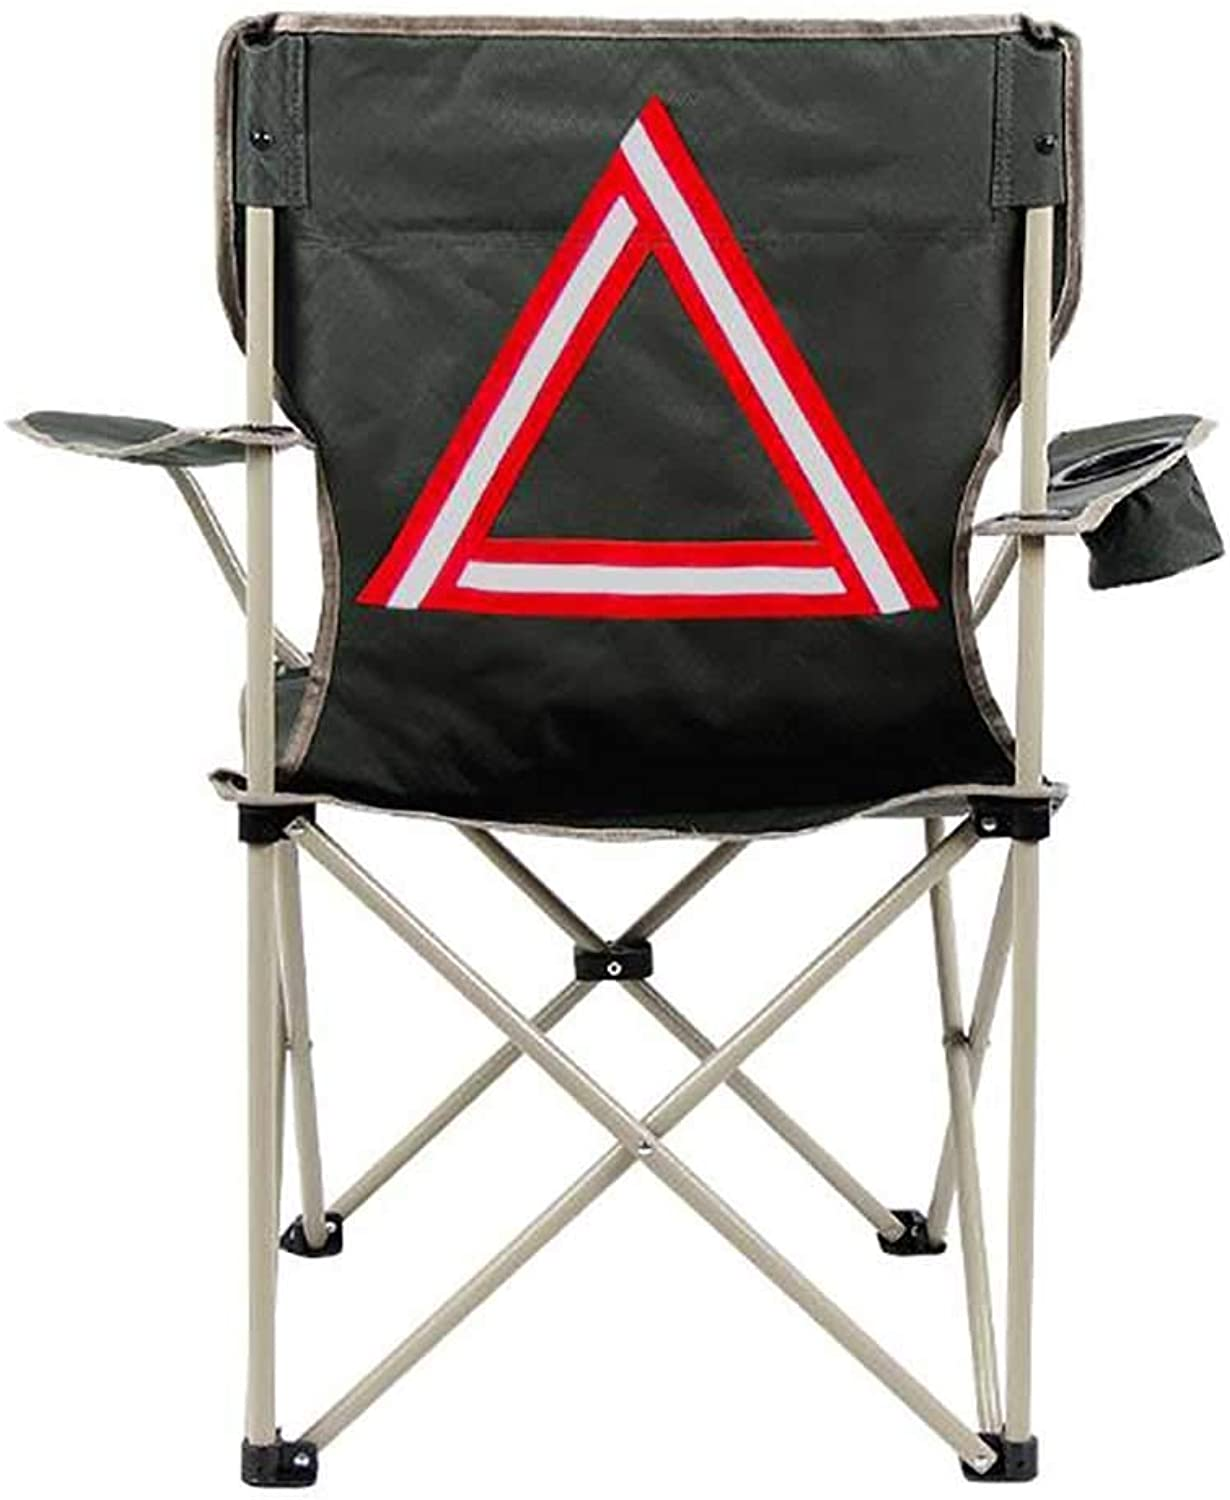 Outdoor Portable Camping Chair, Compact Lightweight Folding Chair with Armrest Beach Fishing Picnics BBQ Heavy Burden,B